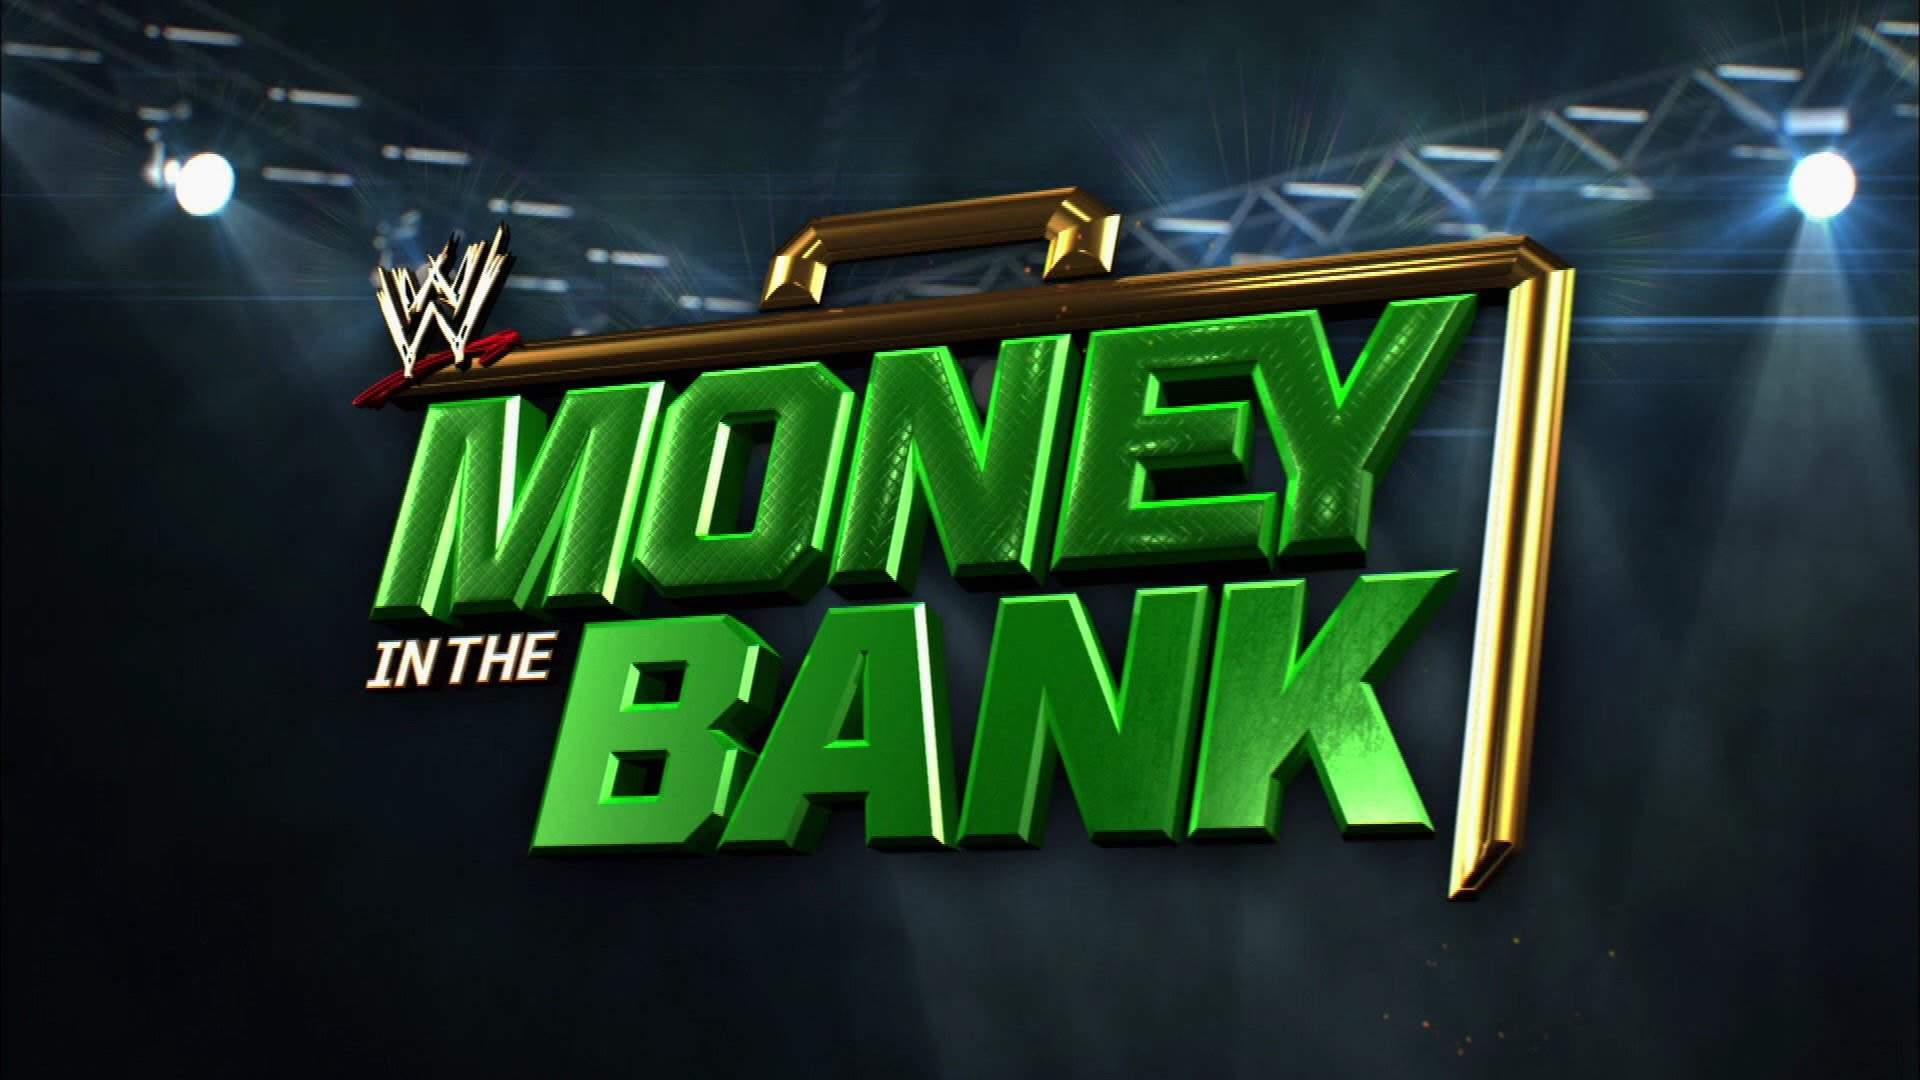 Seasonal Wallpaper For Iphone Money In The Bank Wallpapers 2018